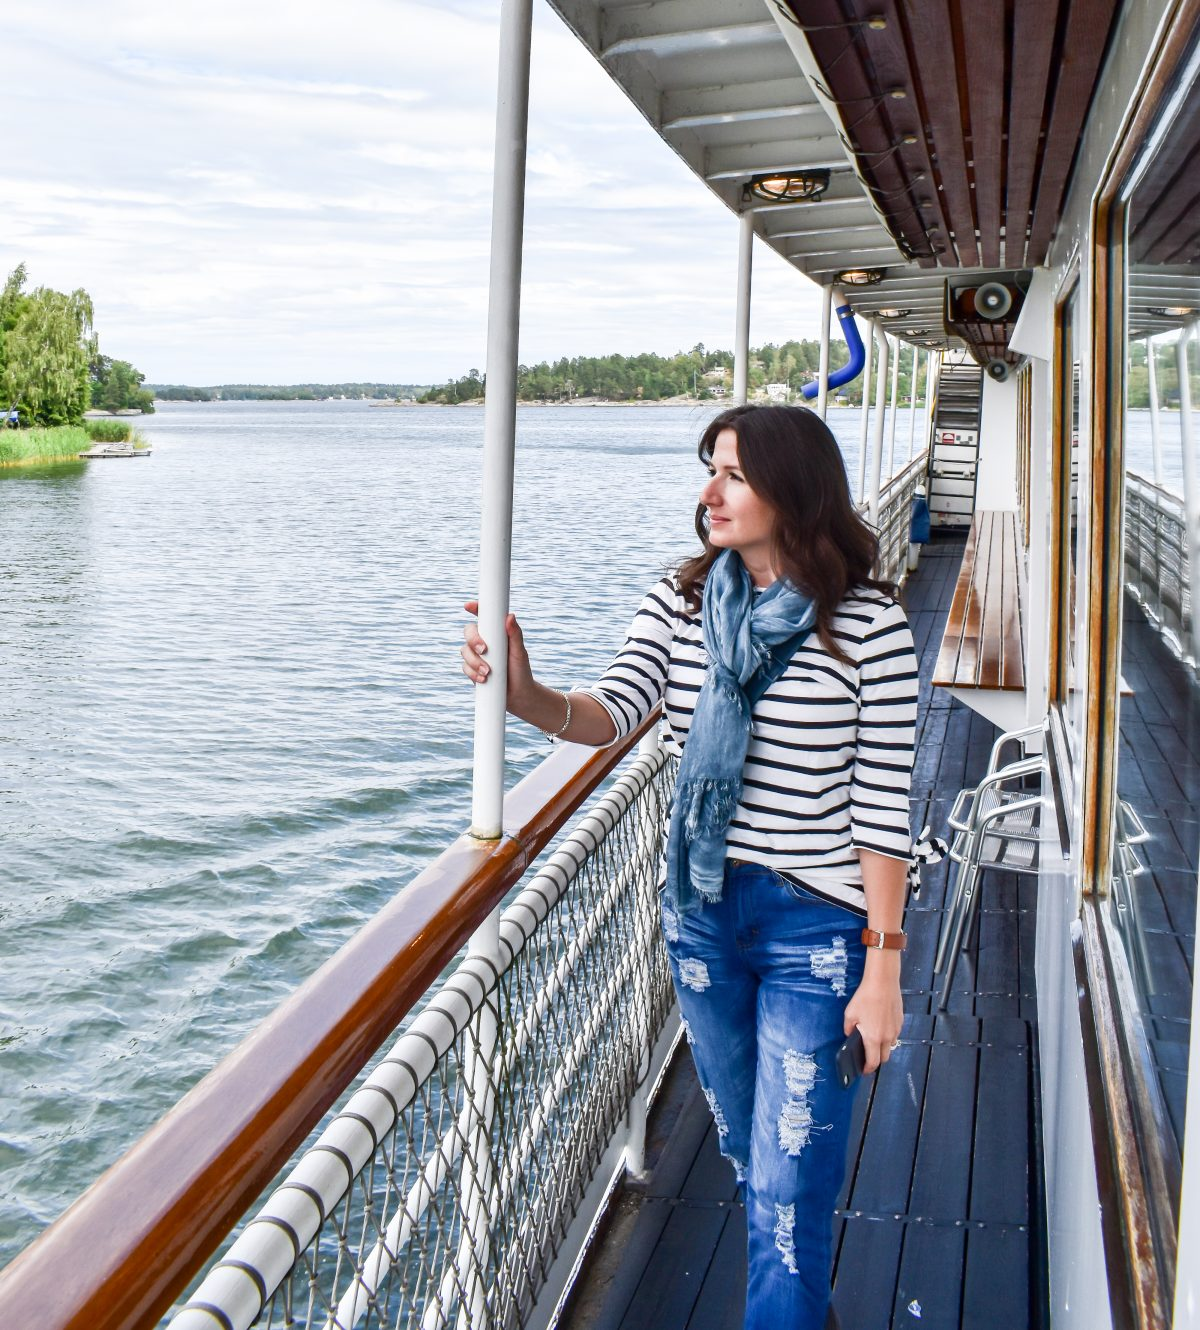 Erin wears a nautical striped top and gazes across the water on a canal cruise in Sweden.